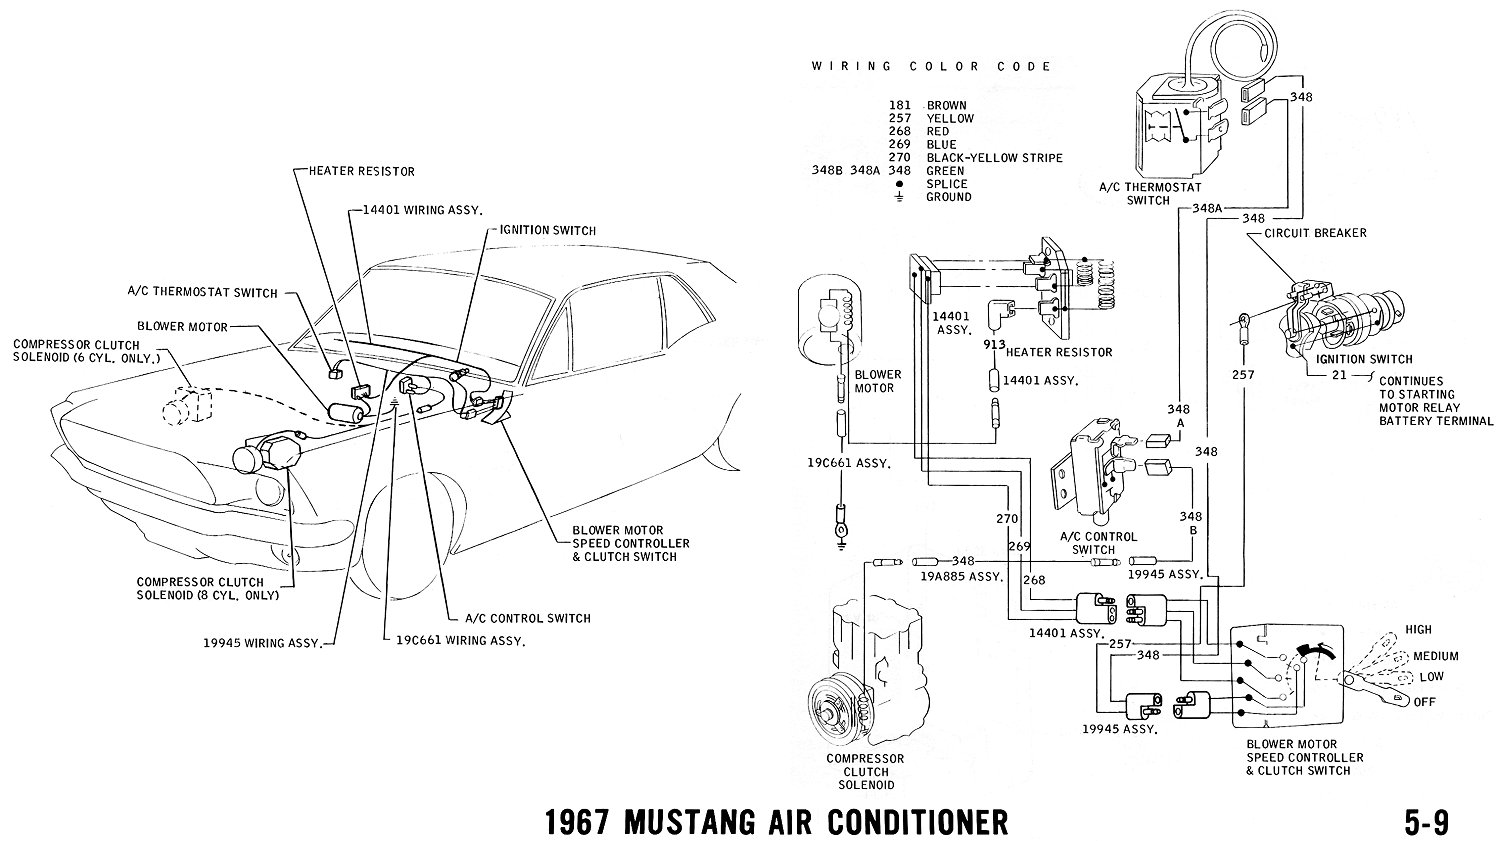 hight resolution of 1967 mustang wiring and vacuum diagrams average joe restoration gm ignition switch wiring diagram 1967 mustang